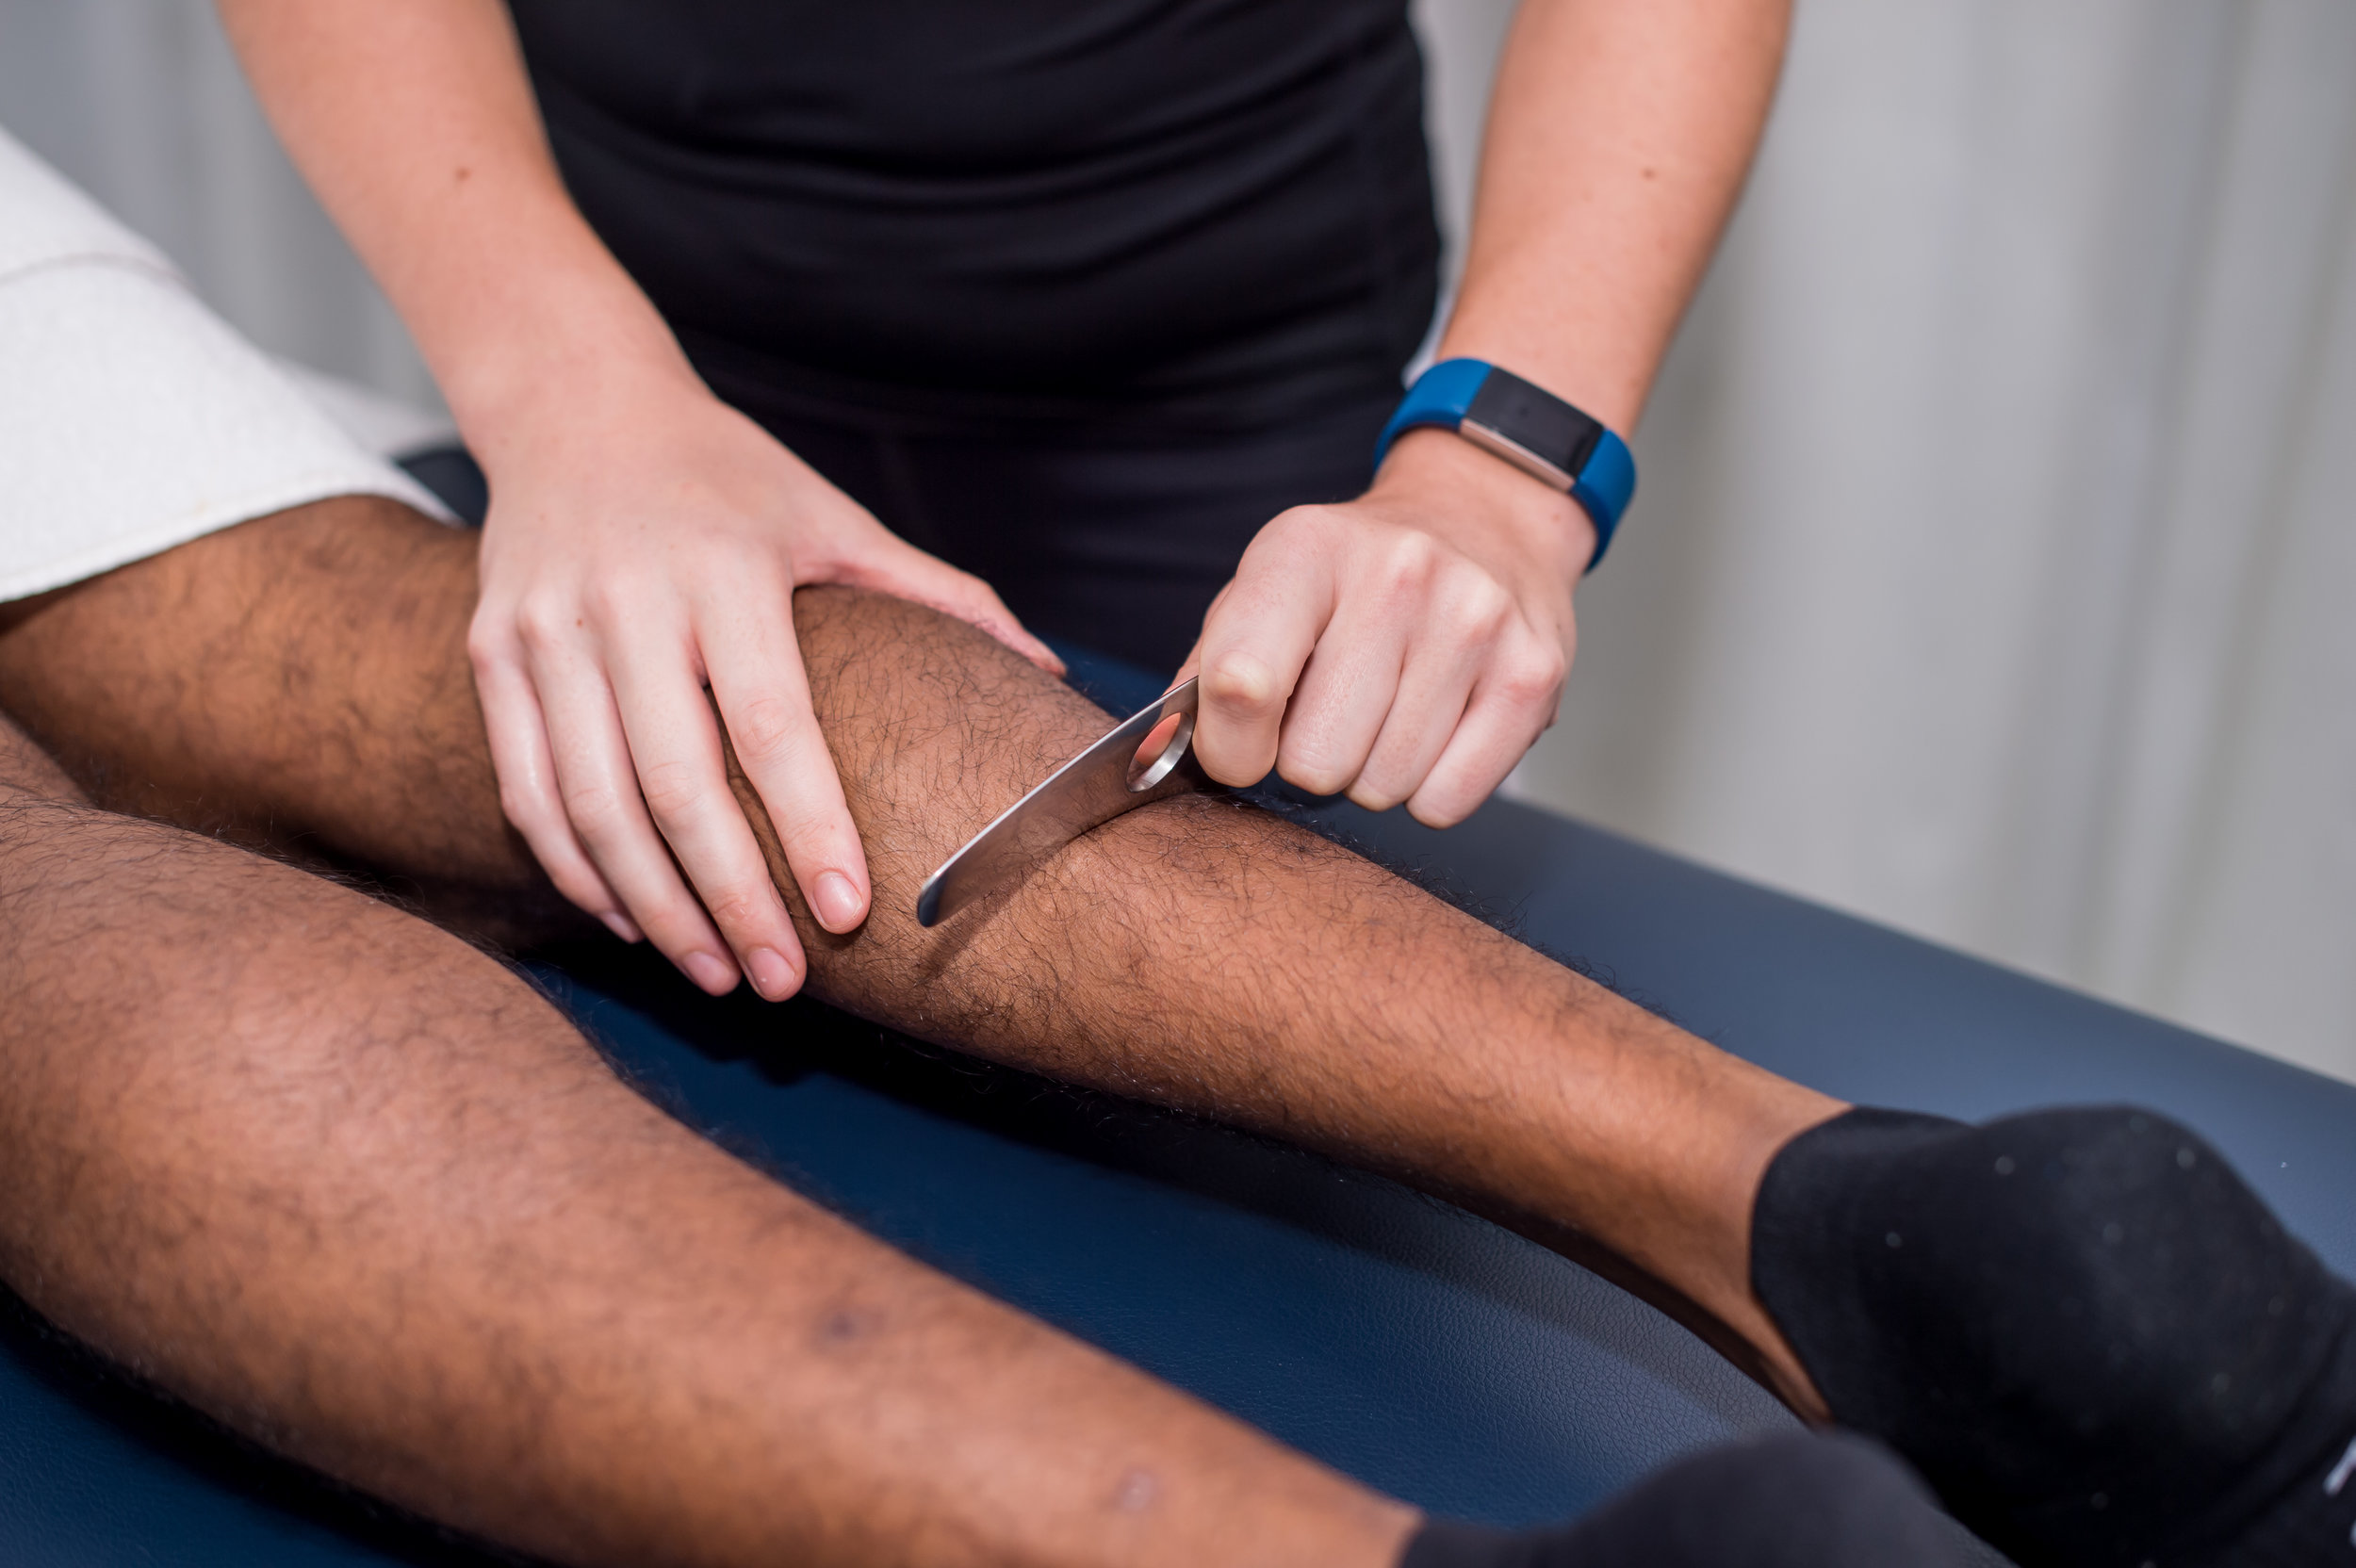 Use of the IASTM tool to add shearing stress to soft tissue in order to enhance the body's healing response.